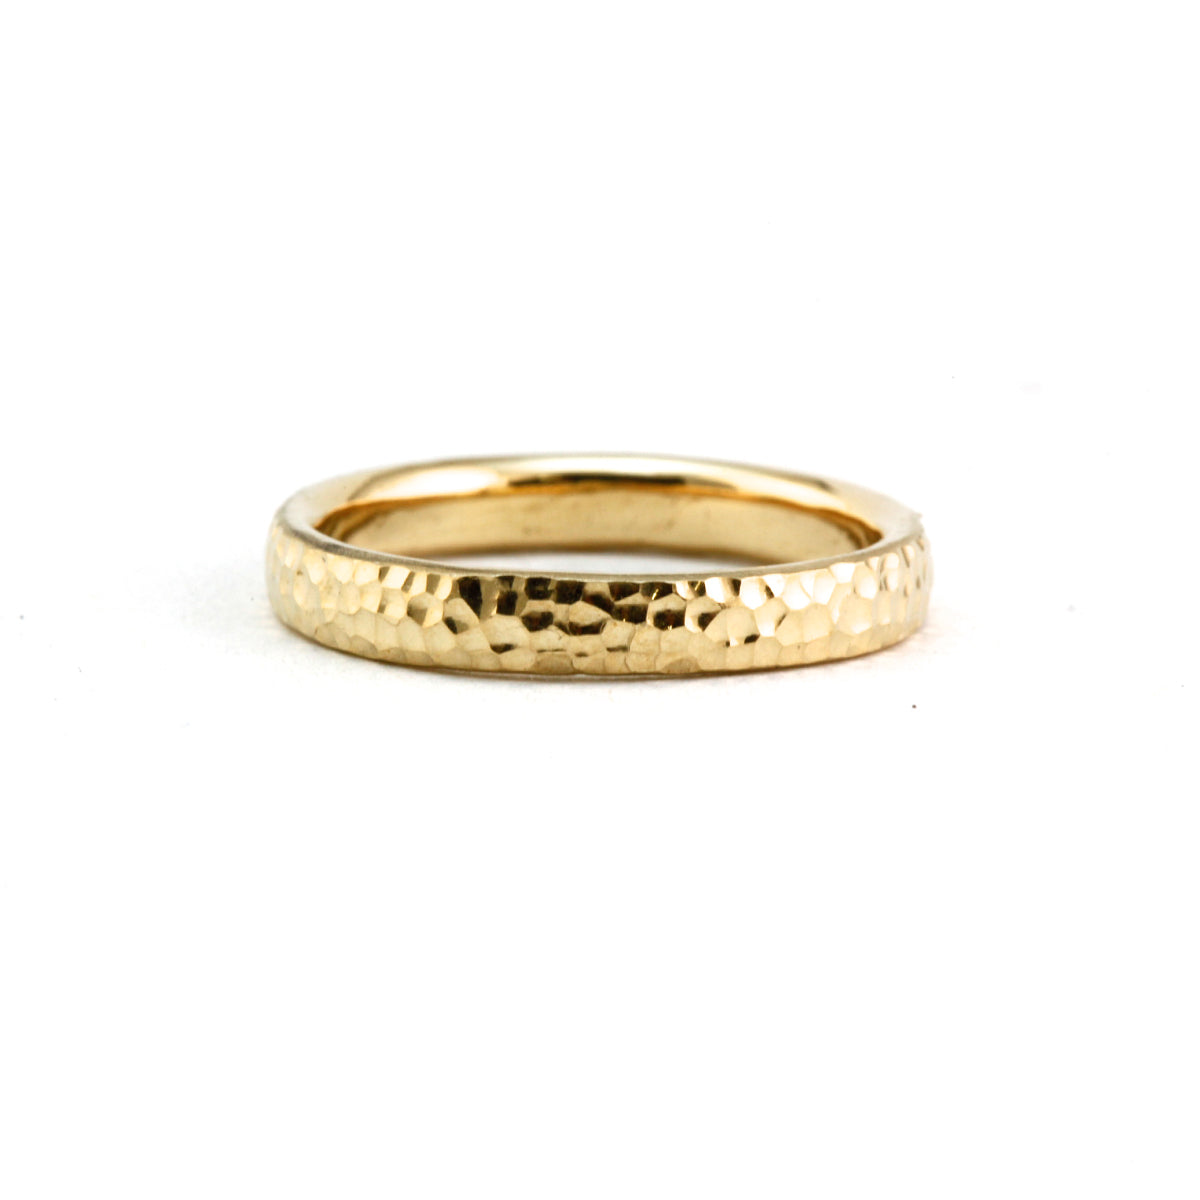 textured 18ct yellow gold mens wedding band, bespoke custom handmade